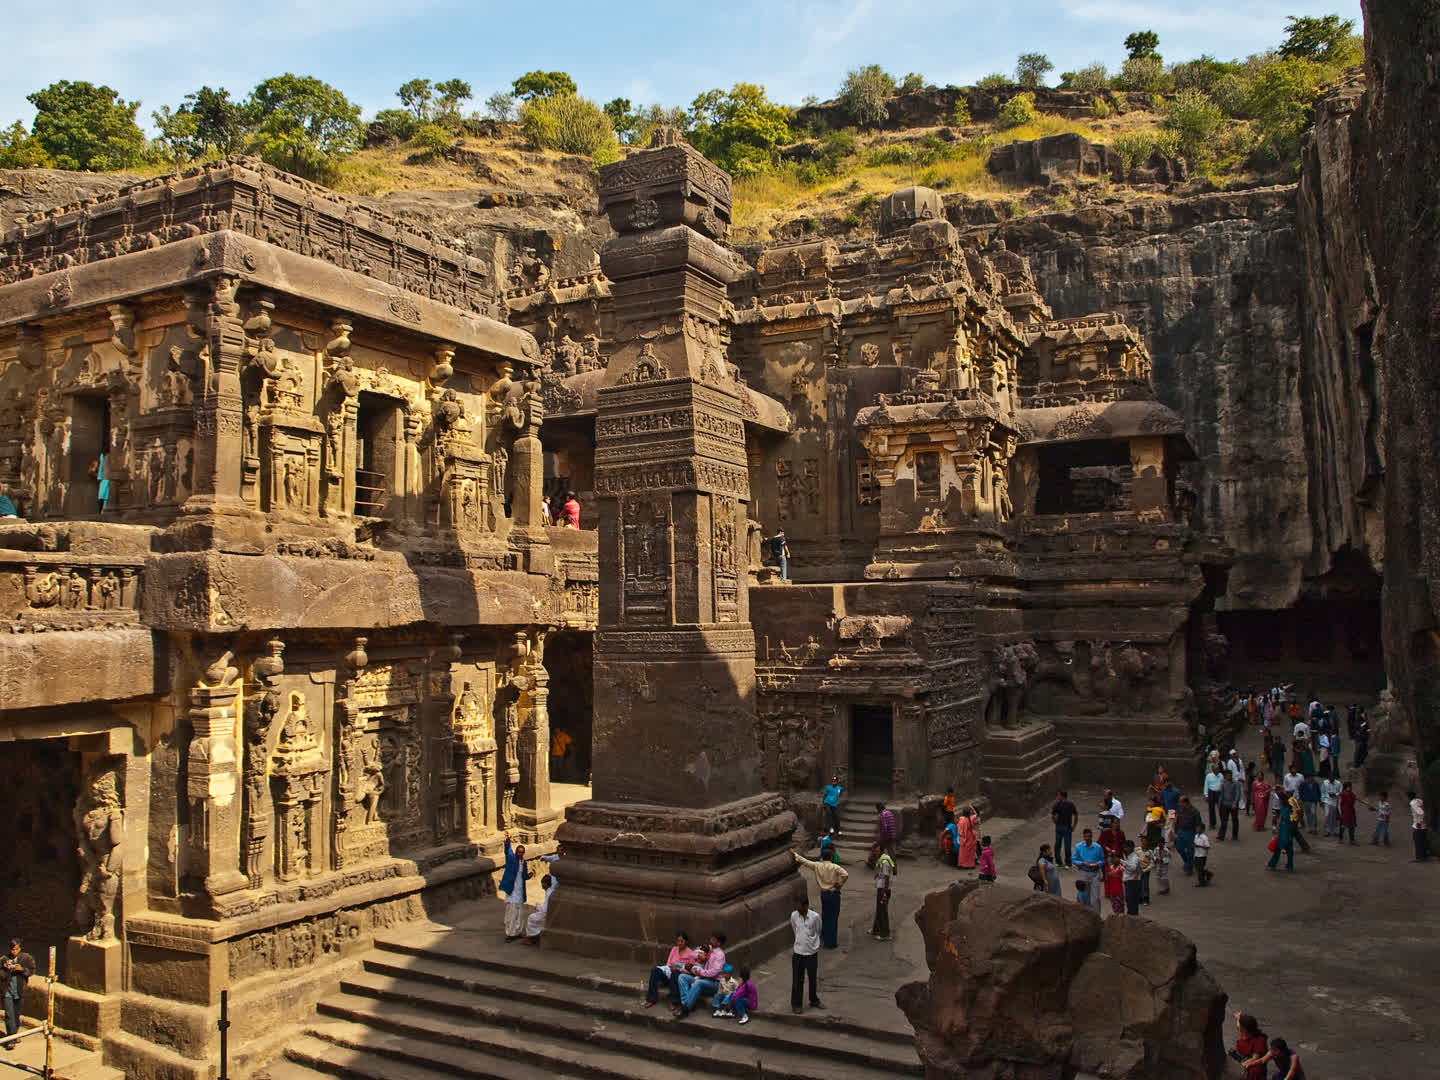 Ellora's Kailasa Temple: Built from the Top